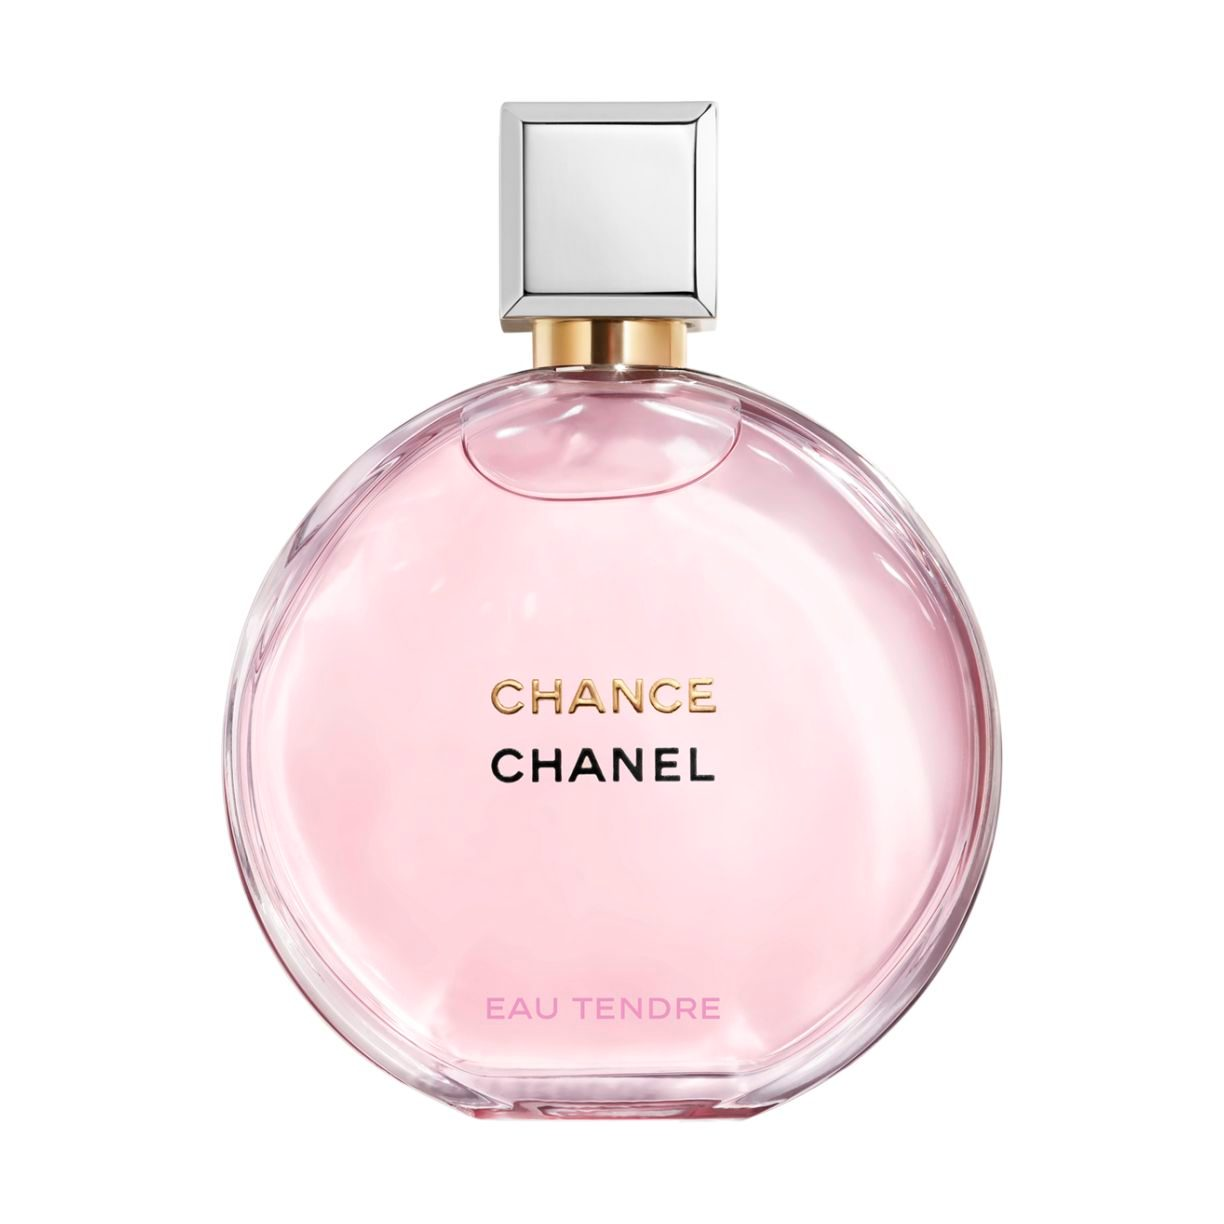 CHANCE EAU TENDRE EAU DE PARFUM SPRAY 50ml